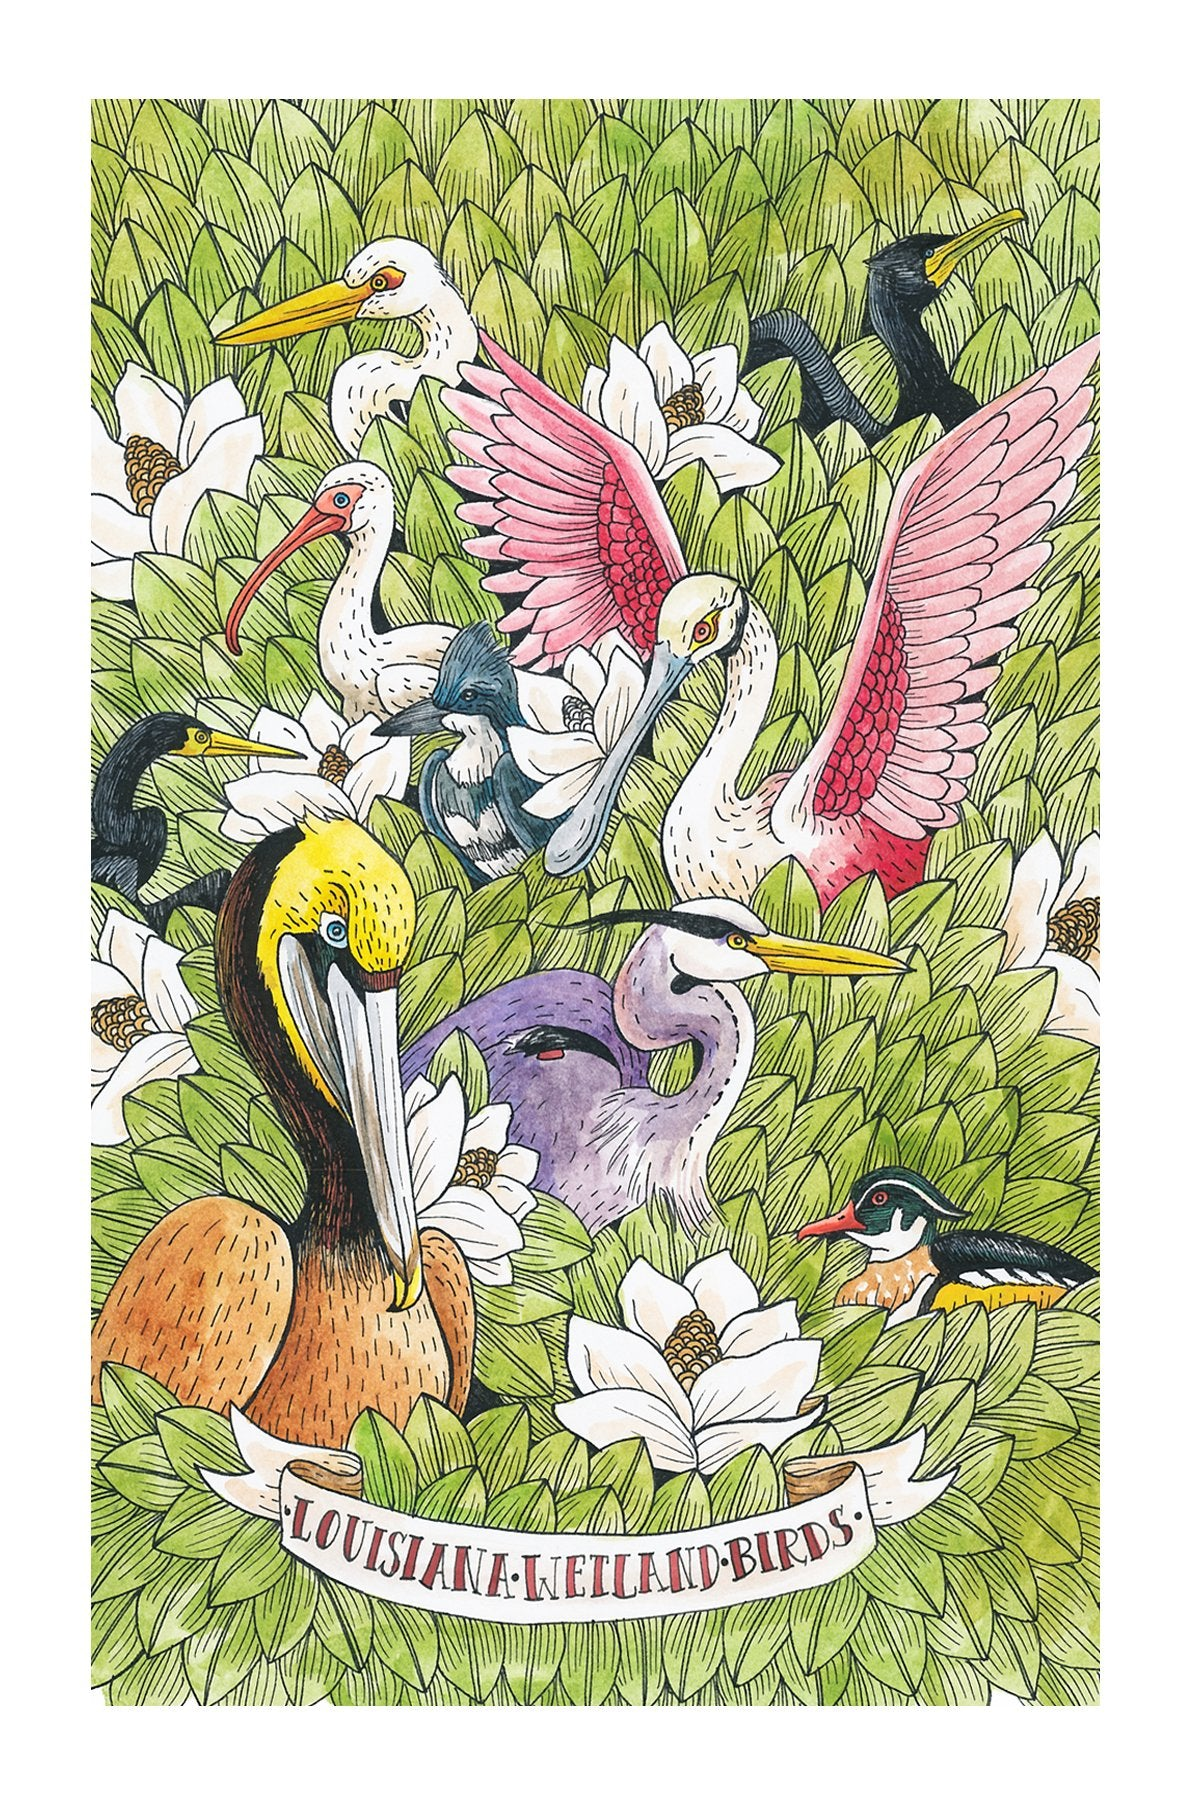 Louisiana Wetland Birds Postcard 6x4